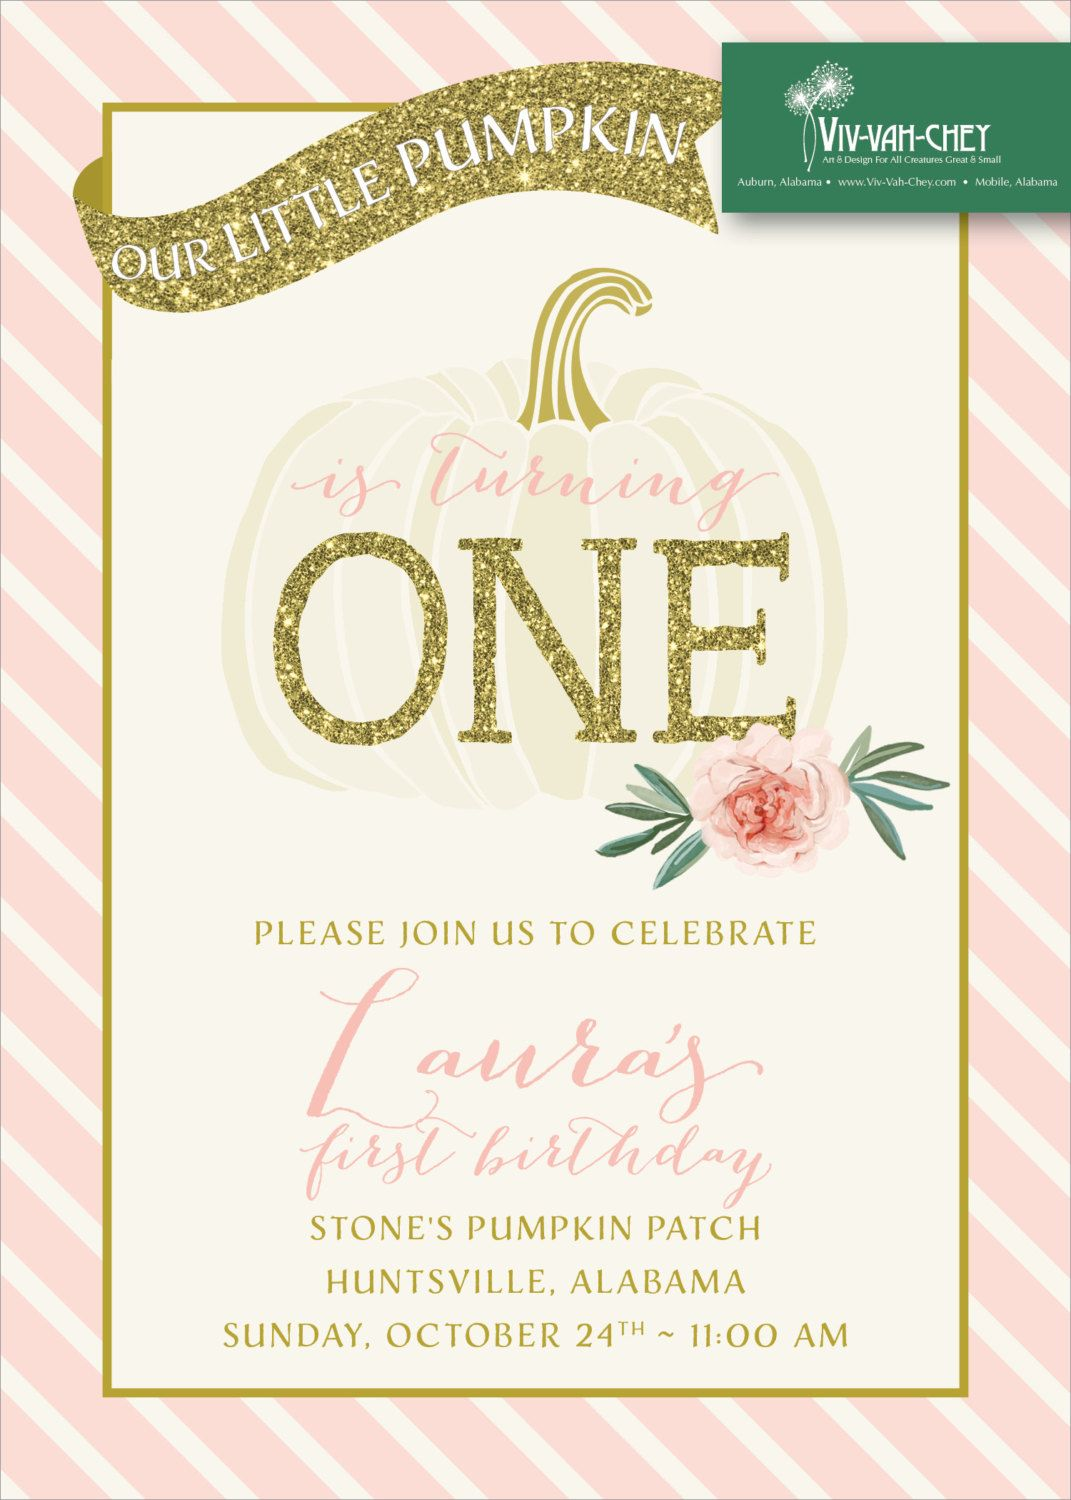 Pretty fall pumpkin first birthday party invitation by vivvahchey pretty fall pumpkin first birthday party invitation by vivvahchey on etsy filmwisefo Image collections